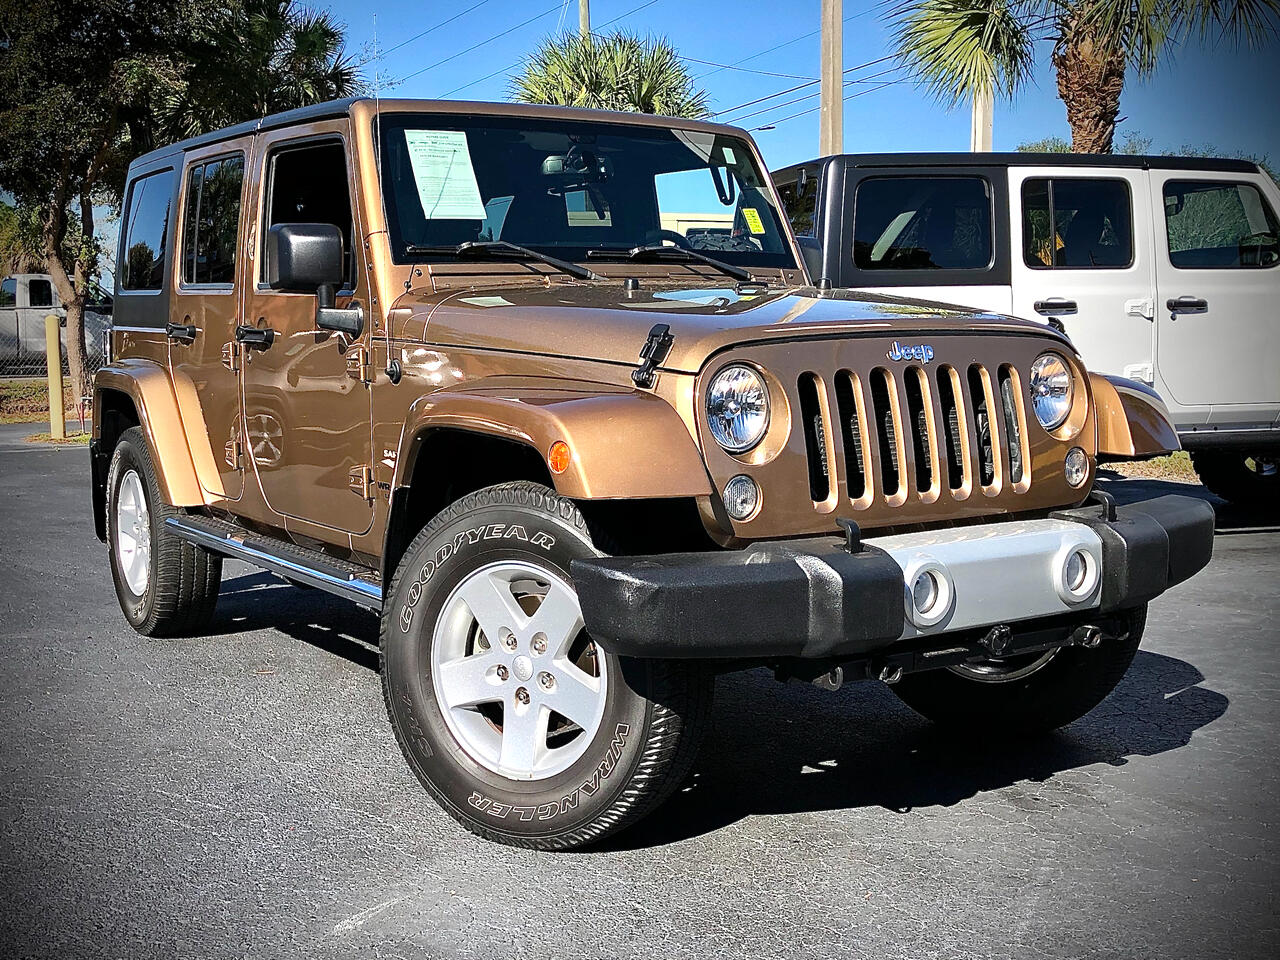 Jeep Wrangler Unlimited Sahara 4x4 2015